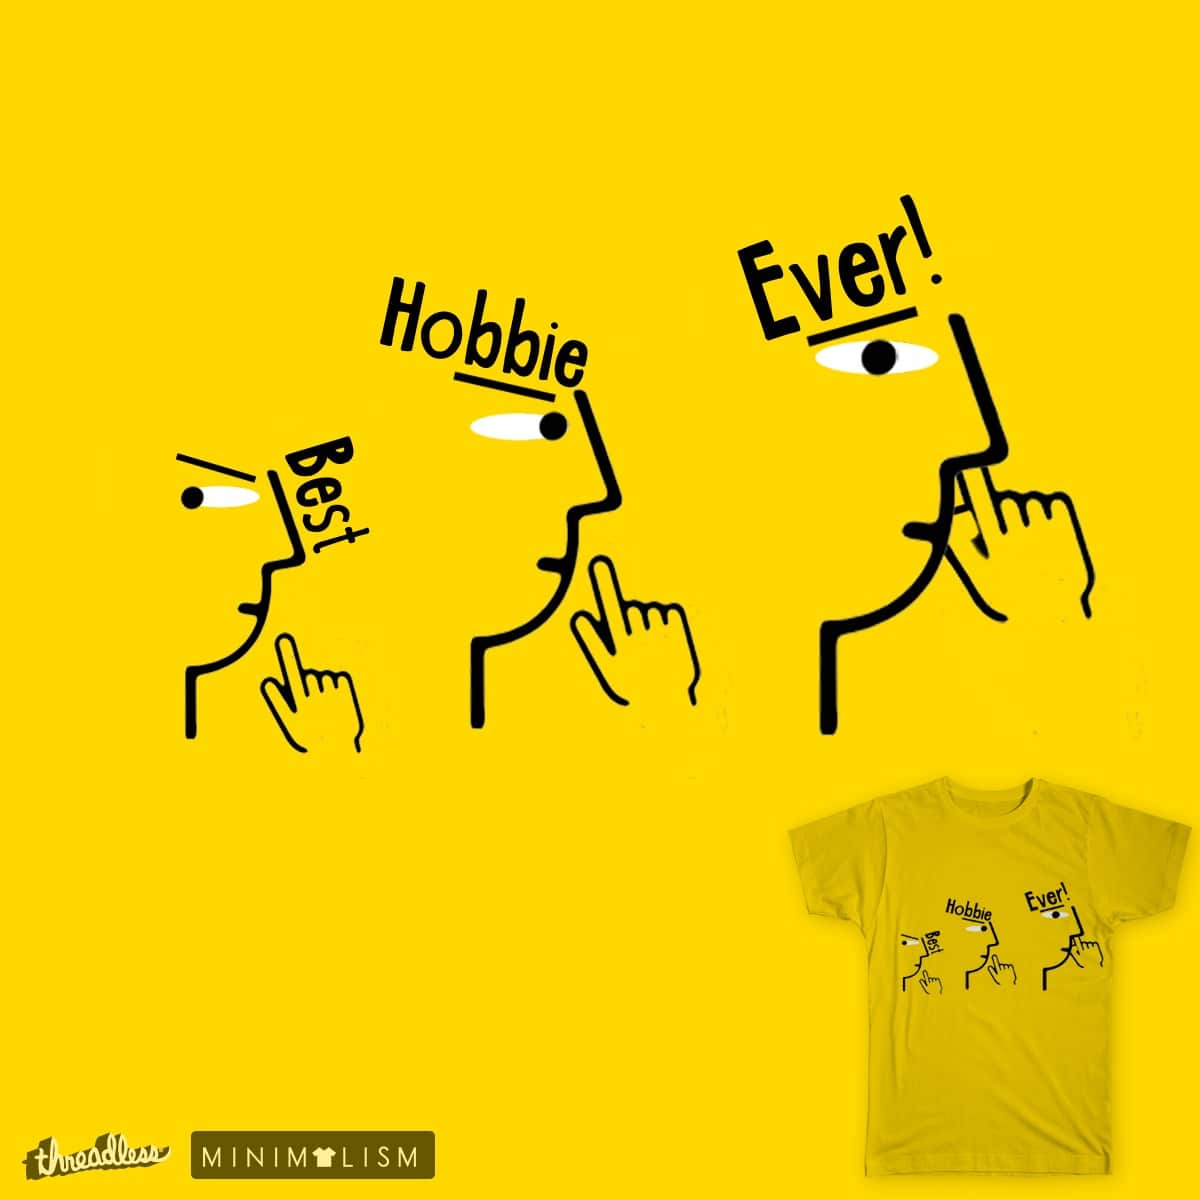 Best Hobbie Ever by AvinashBhatU on Threadless